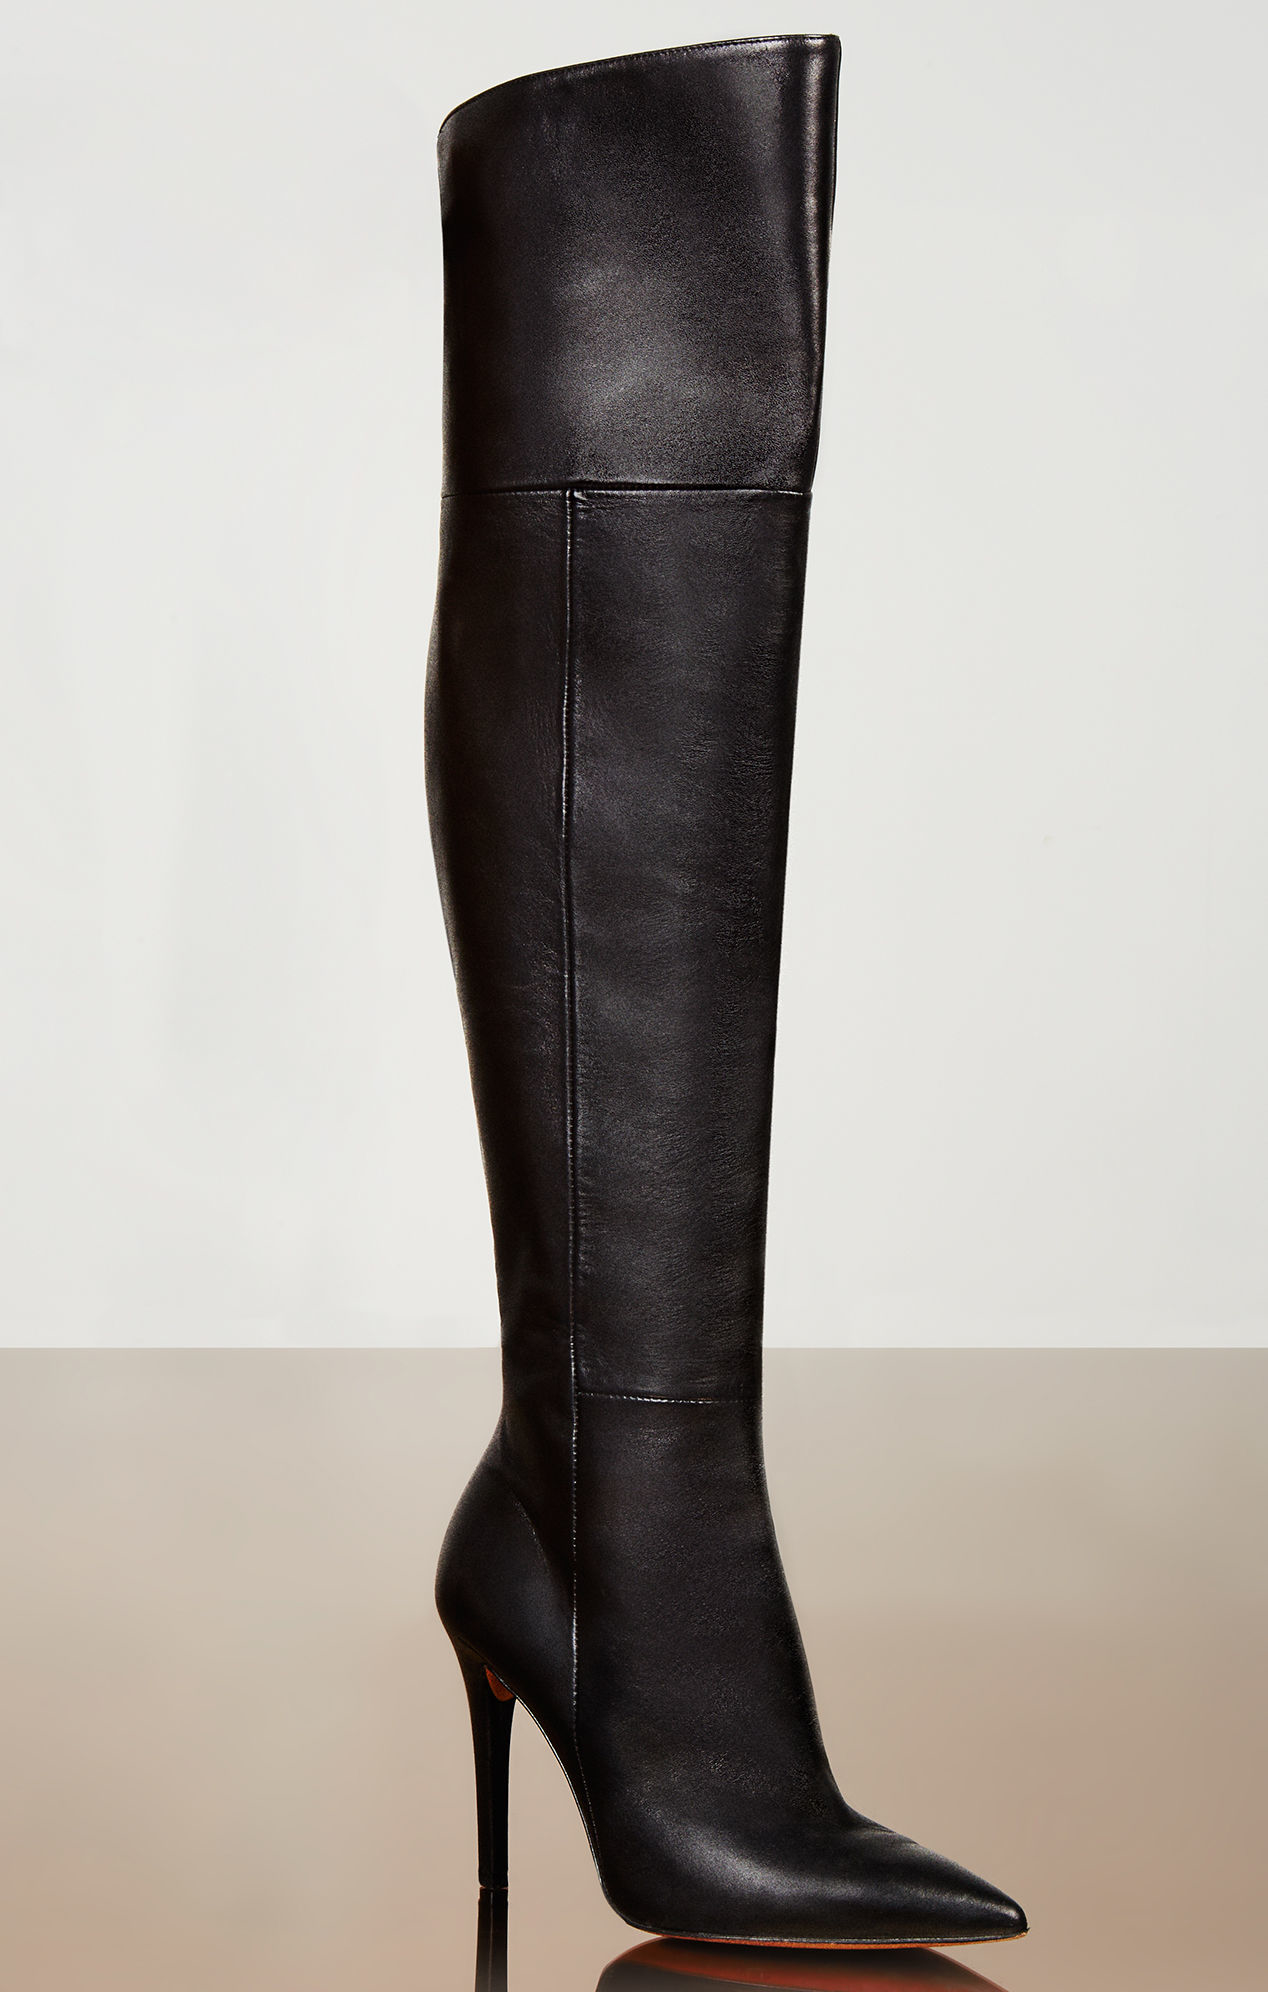 Lyst - BCBGMAXAZRIA Abella High-heel Over-the-knee Leather Boots in ... 42b086685